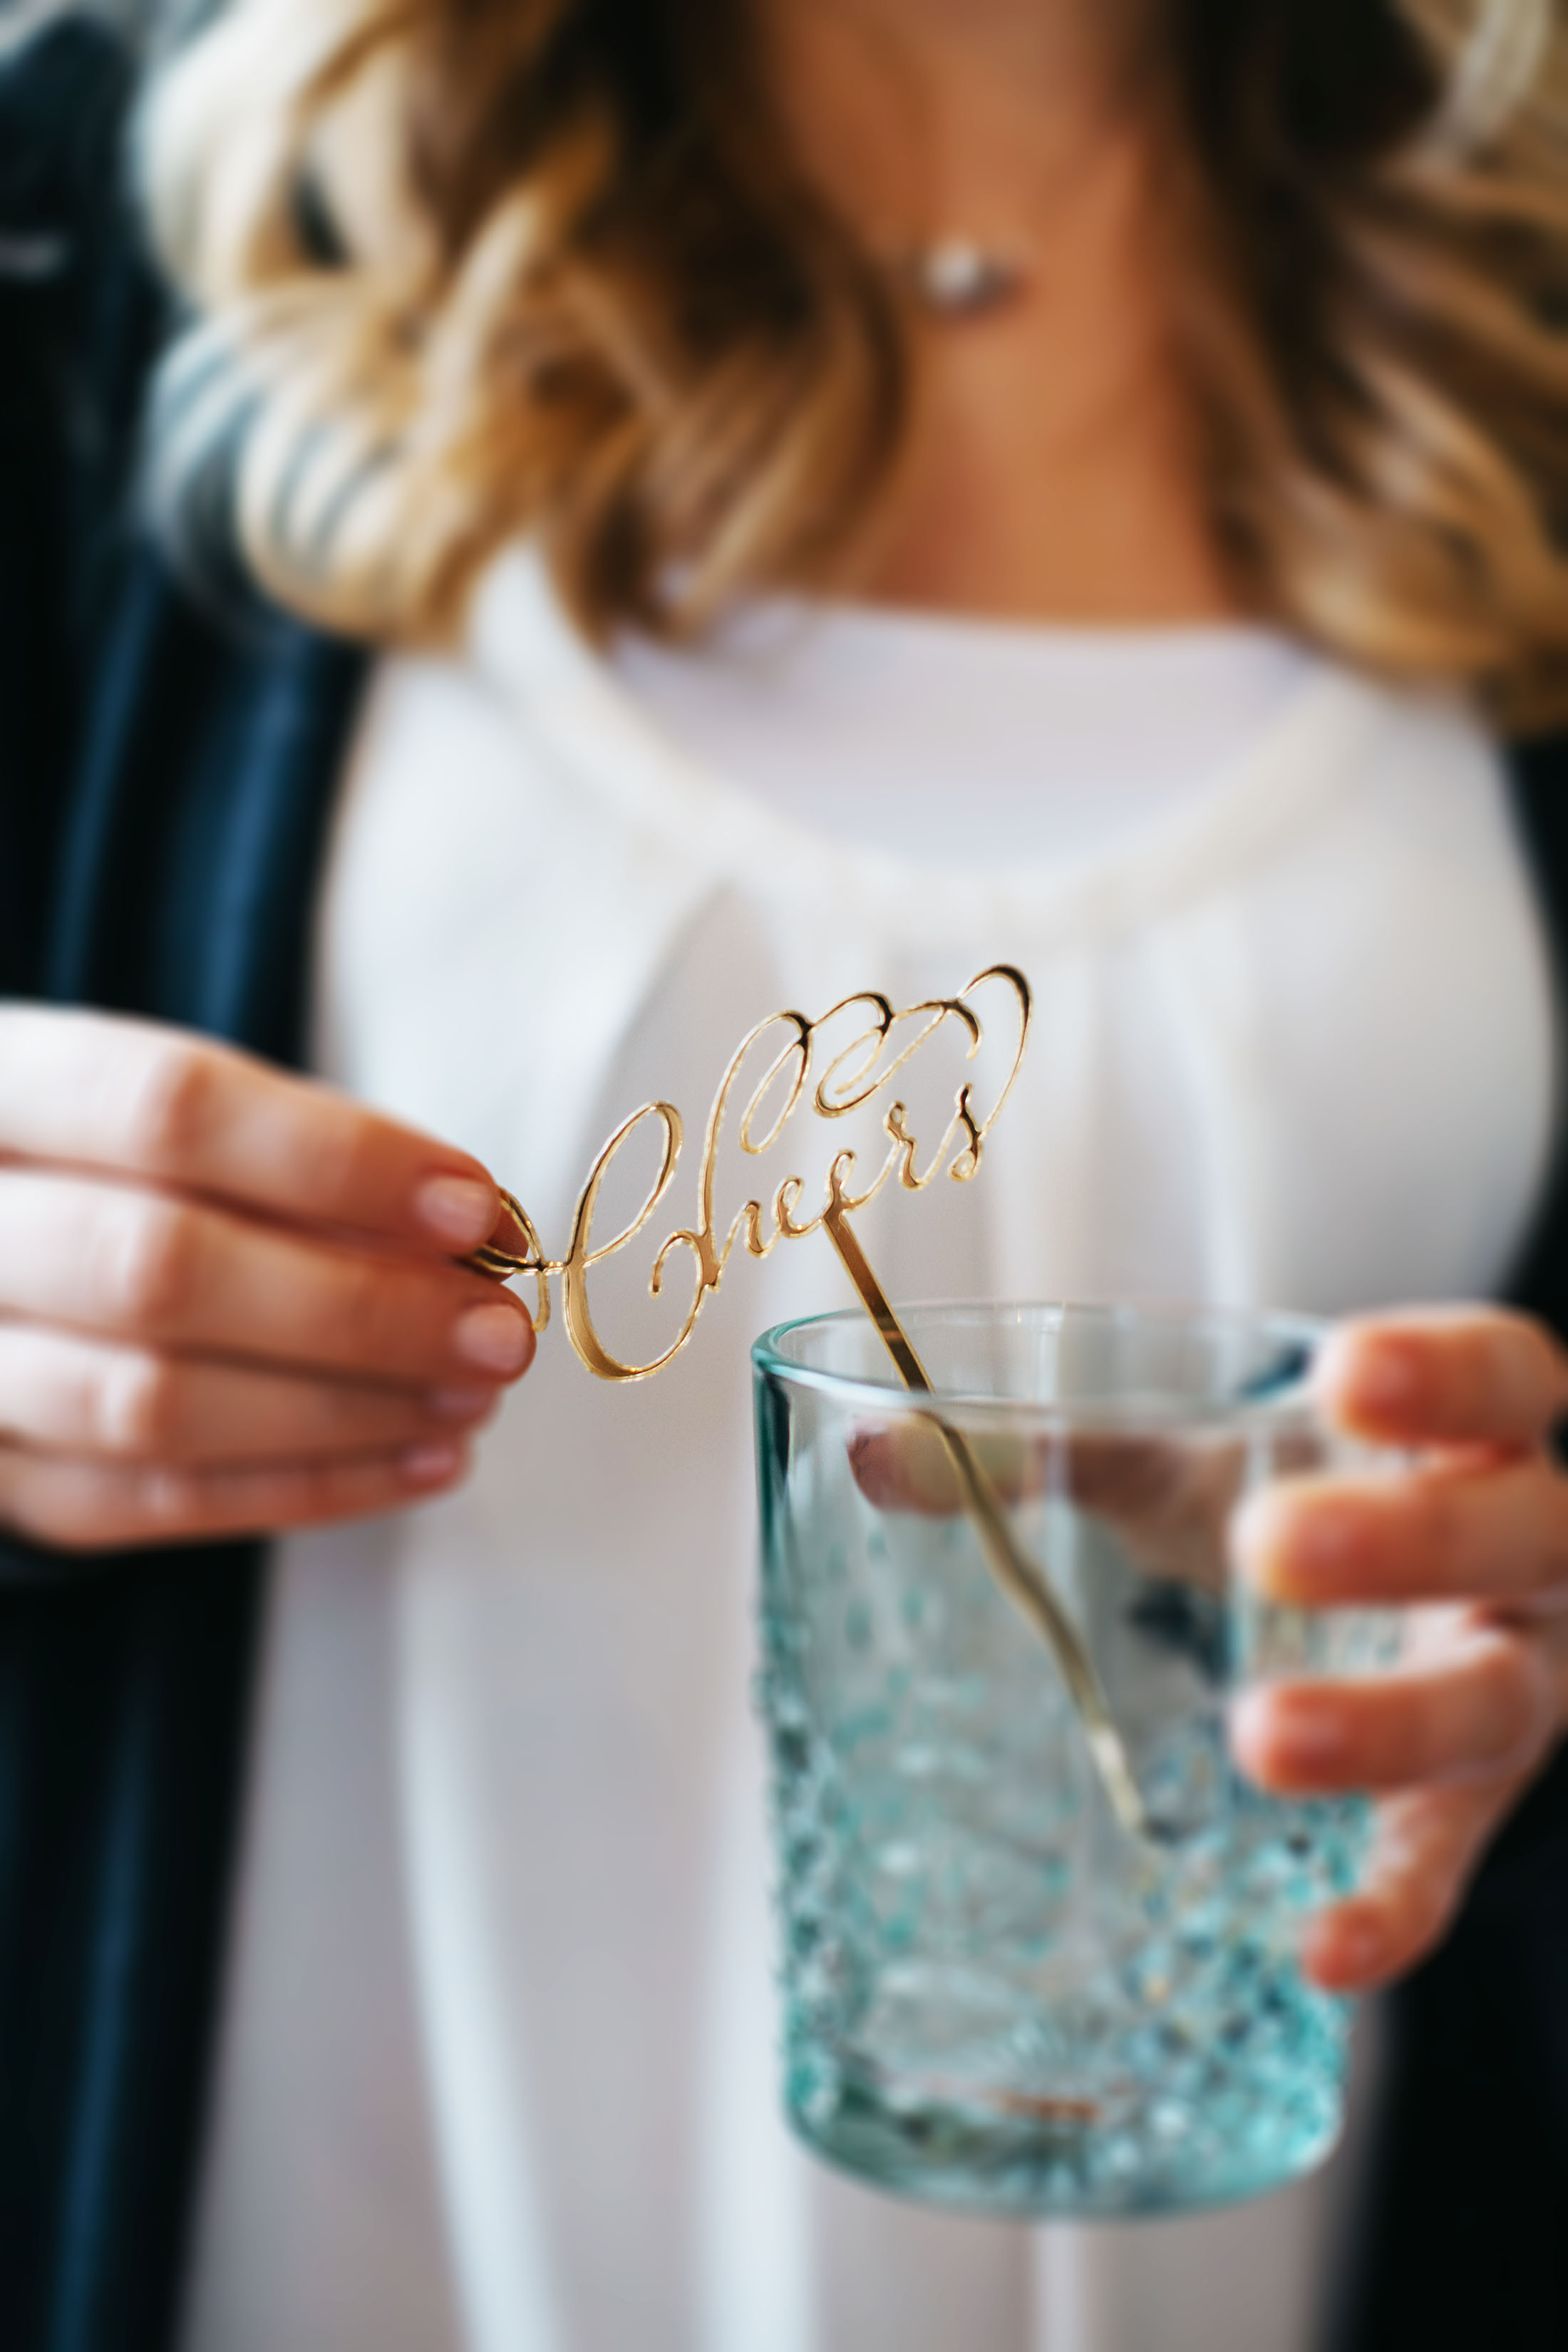 Custom gold mirror cheers drink stirrers we made for a style shoot with  Bespoken Weddings .